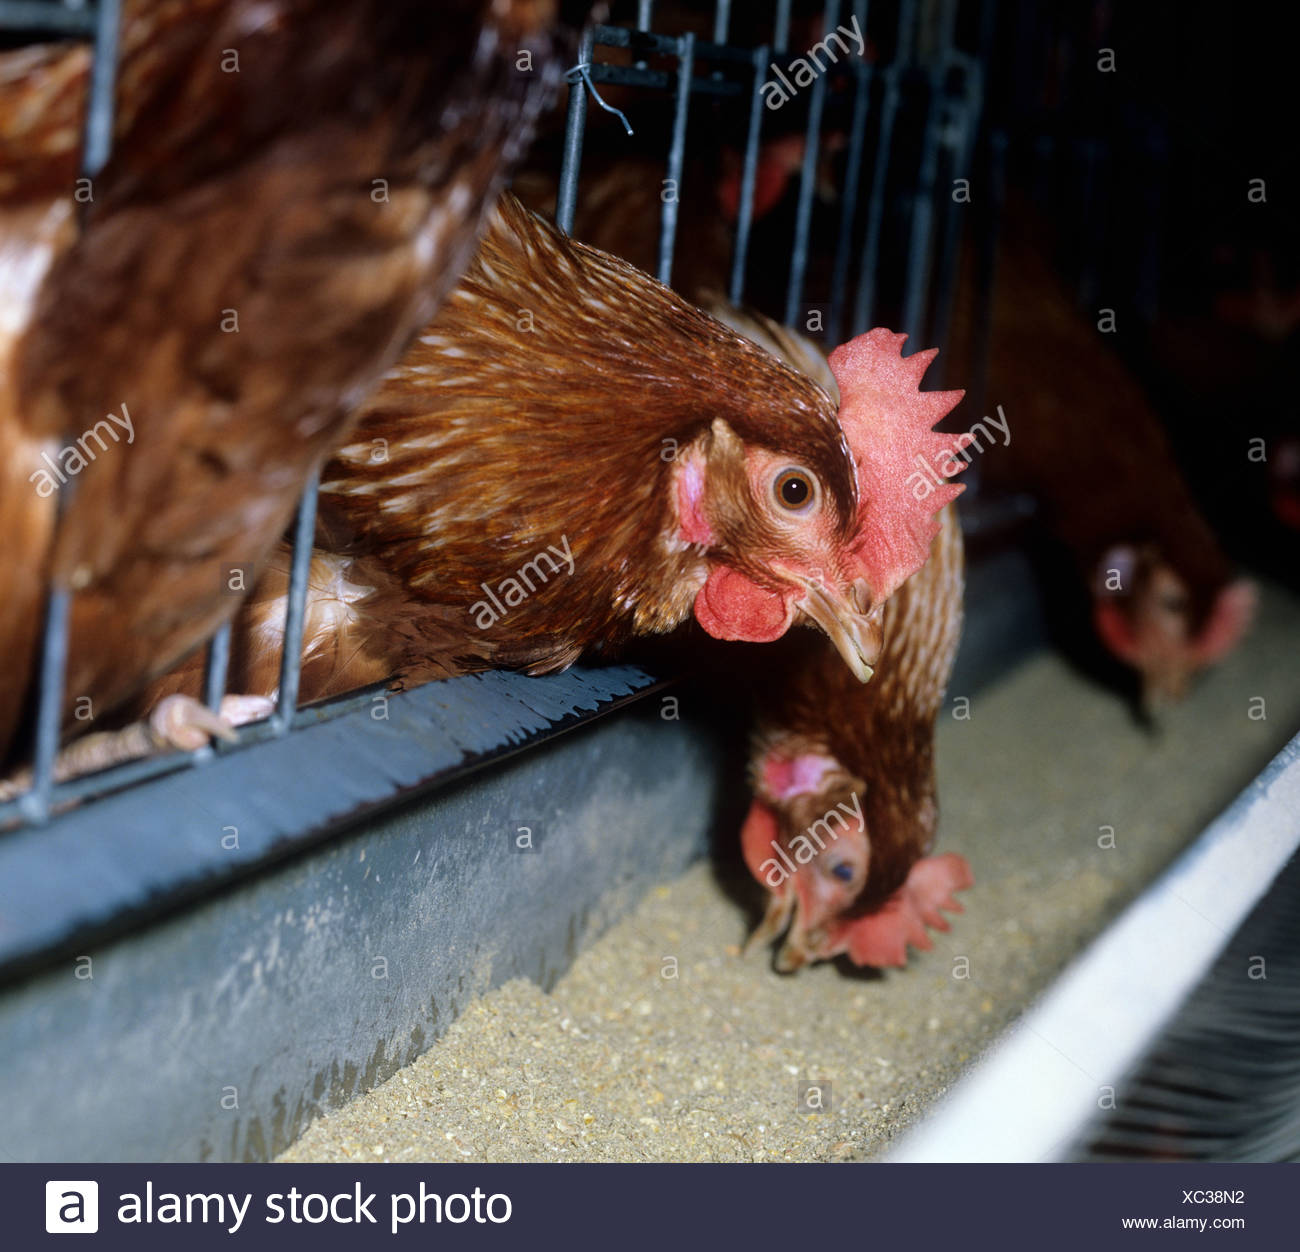 A battery egg laying chicken feeding through the cage bars - Stock Image